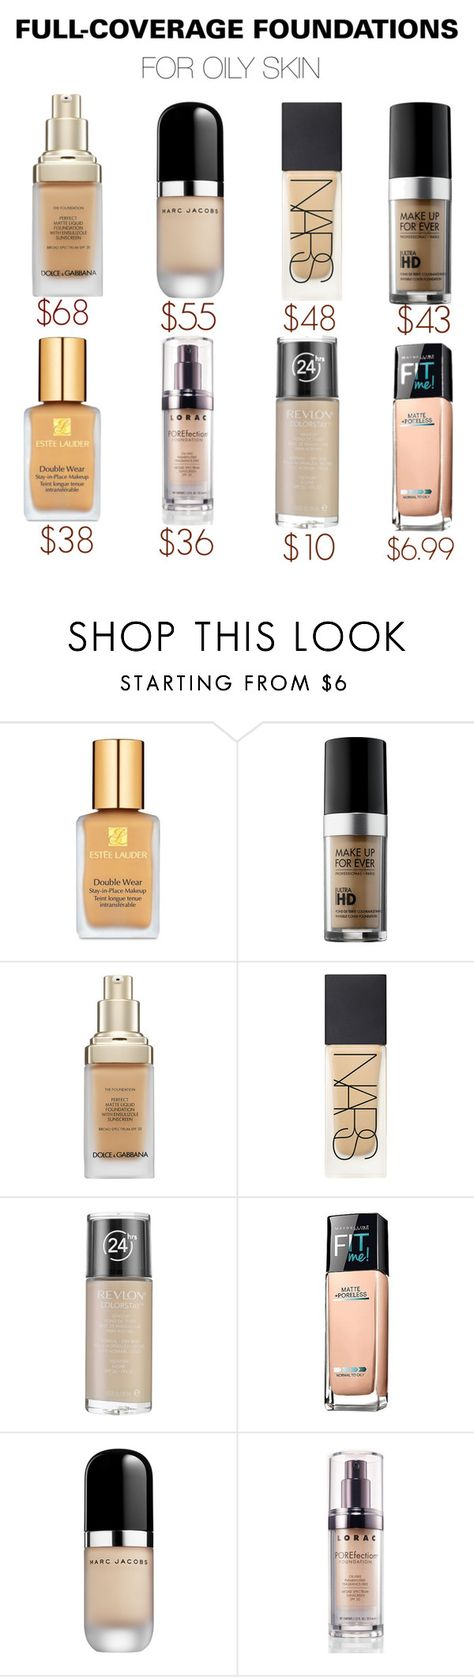 """Full-coverage foundations for oily skin"" by sozelizabeth ❤ liked on Polyvore featuring beauty, Estée Lauder, MAKE UP FOR EVER, Dolce&Gabbana, NARS Cosmetics, Revlon, Maybelline, Marc Jacobs and LORAC"